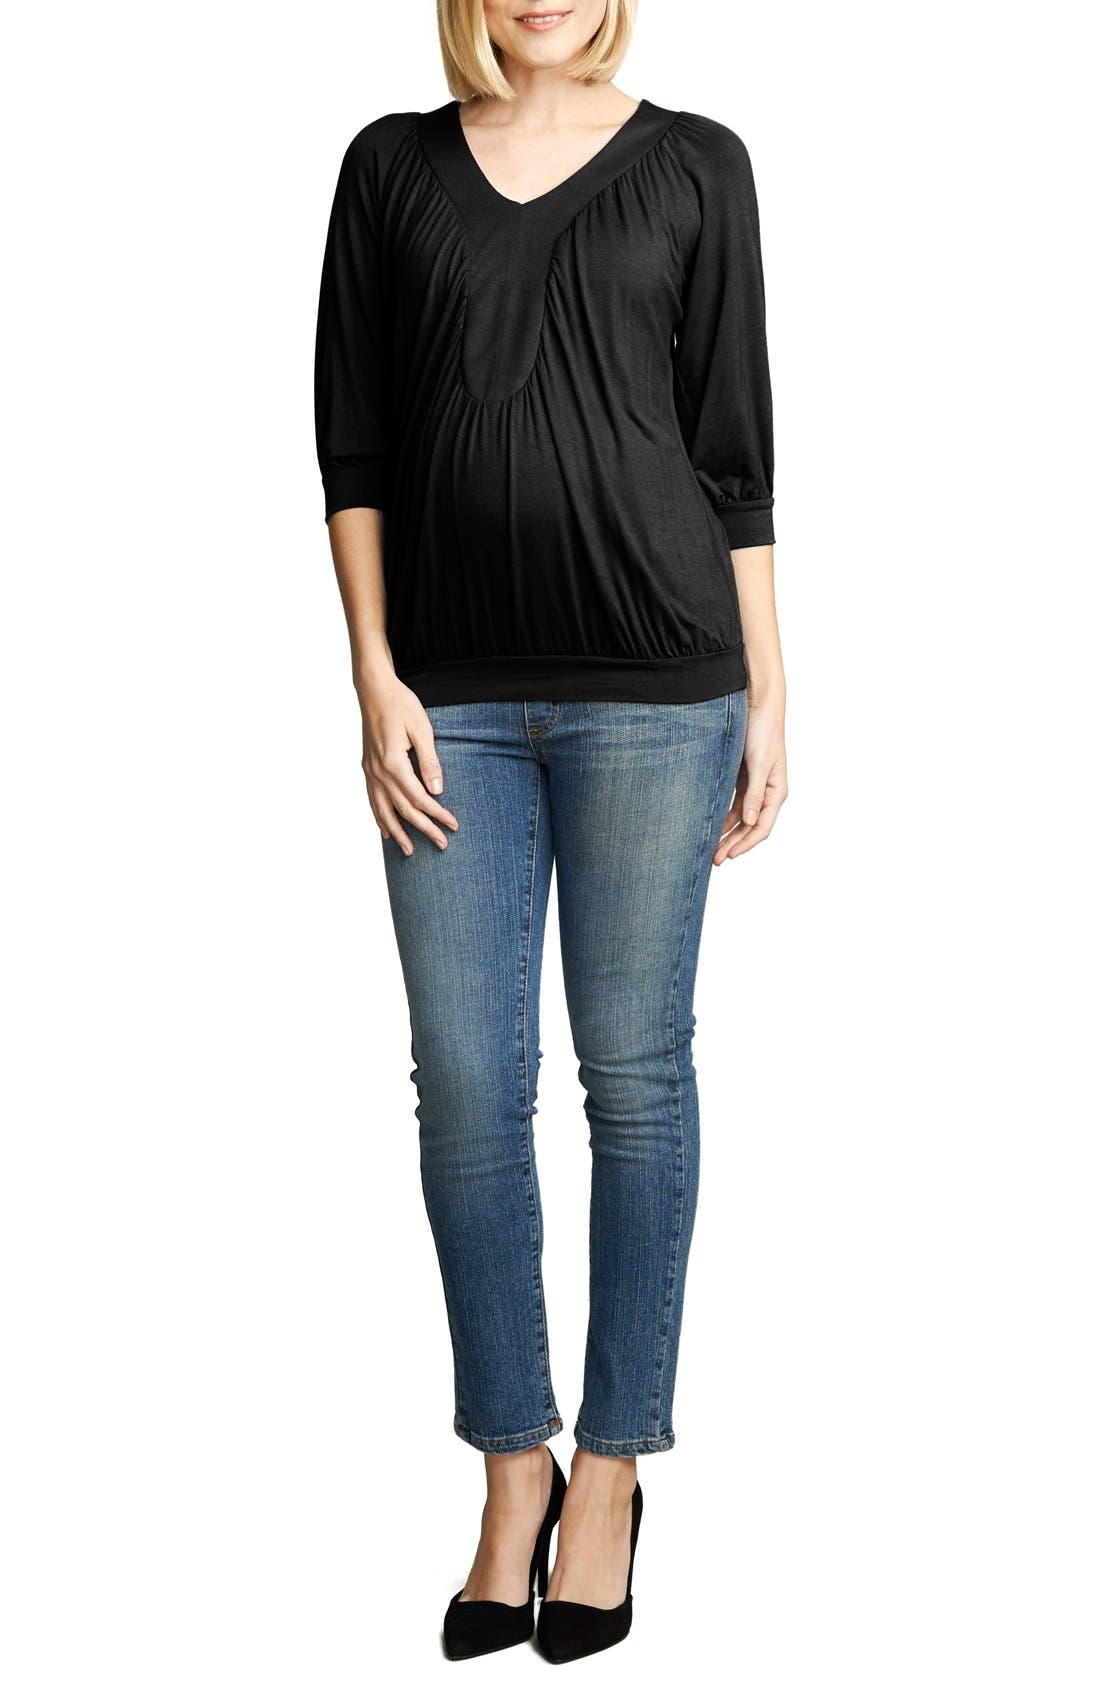 Ruched Dolman Top